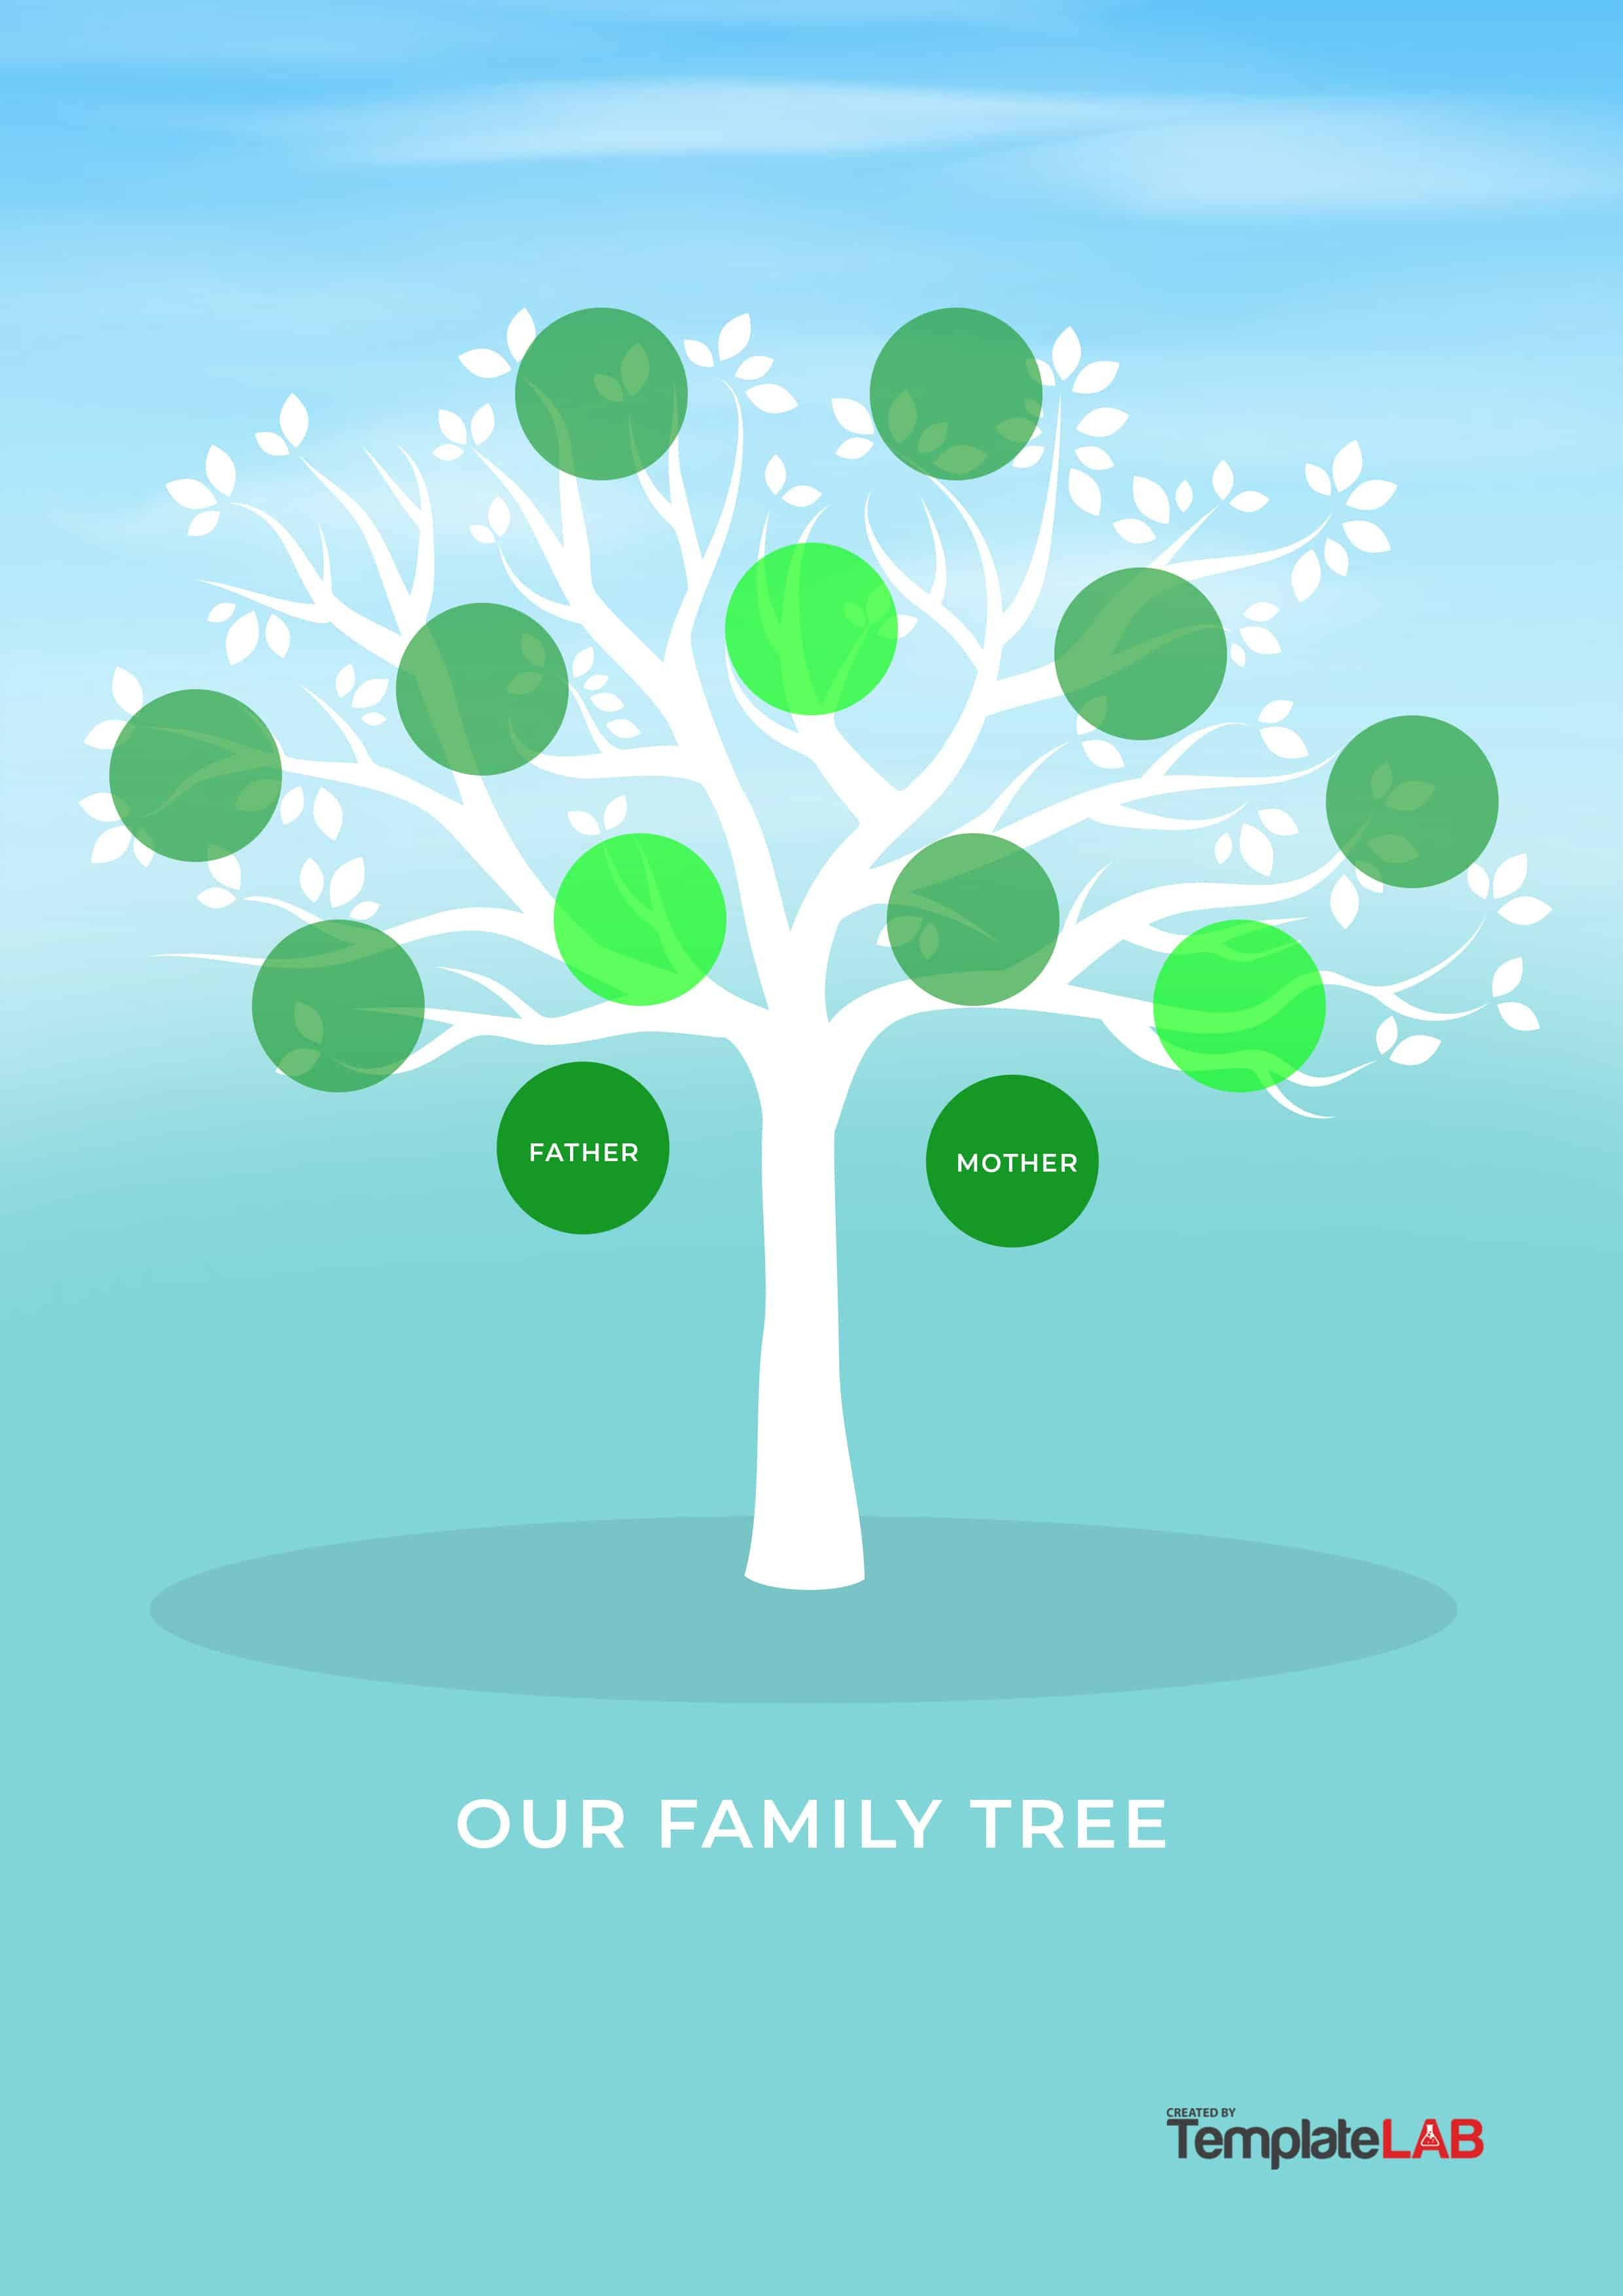 Free Family Tree Templates Word Excel Pdf ᐅ Template Lab For Fill In The Blank Family Tree Template